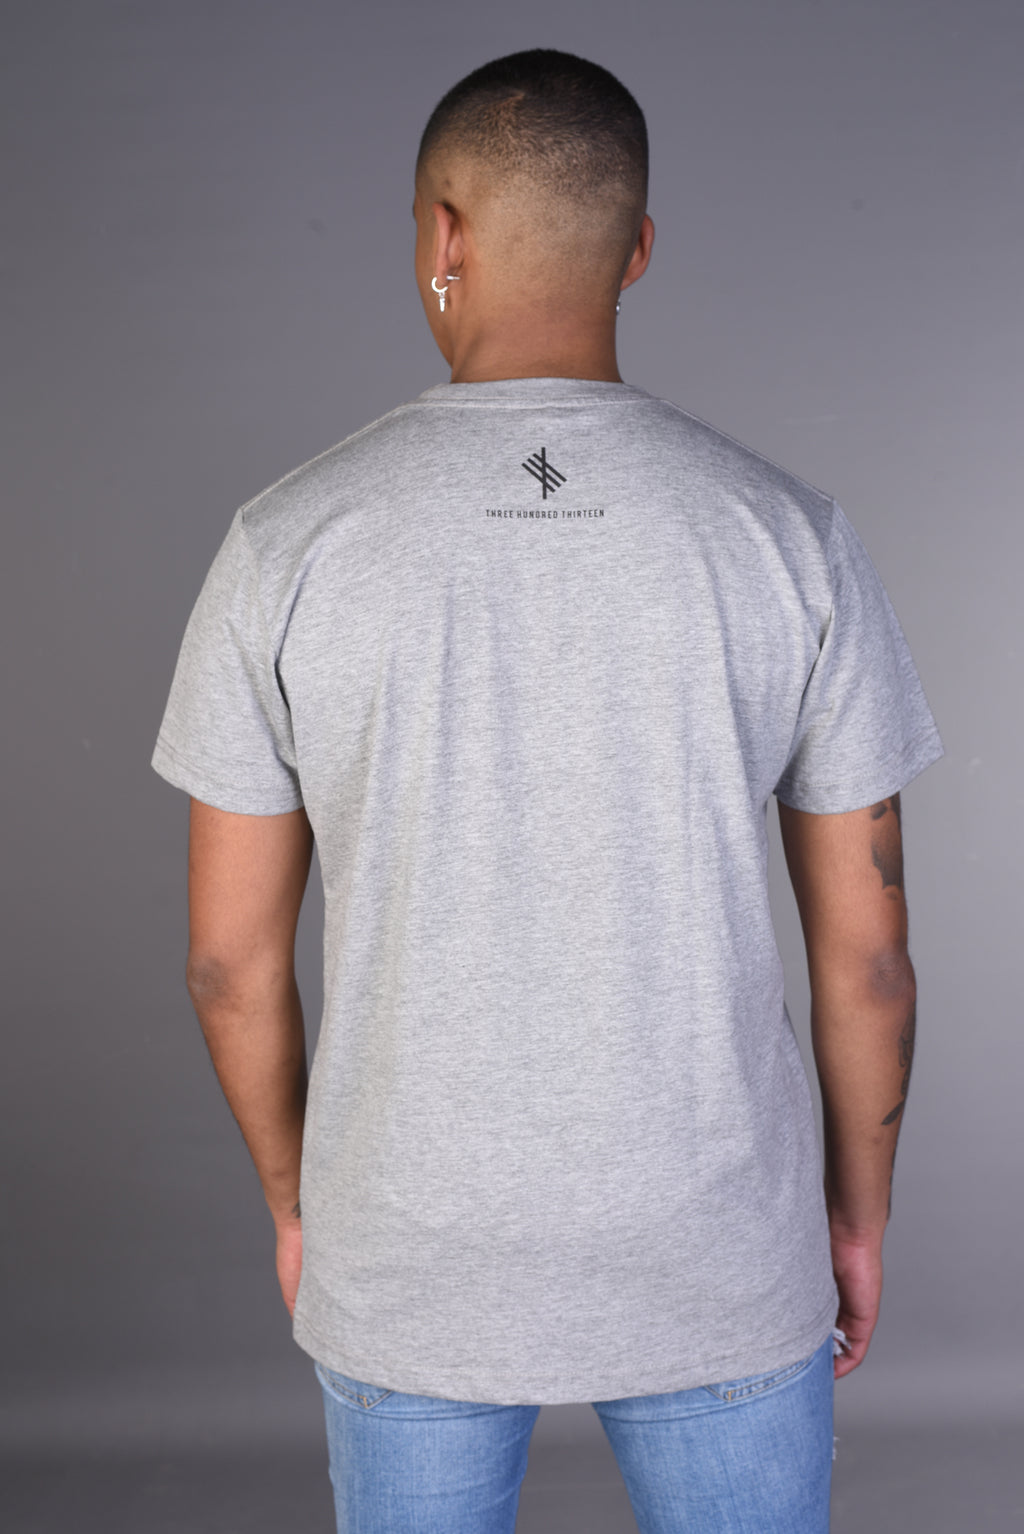 VINI VIDI VICI - Heather Gray Tee